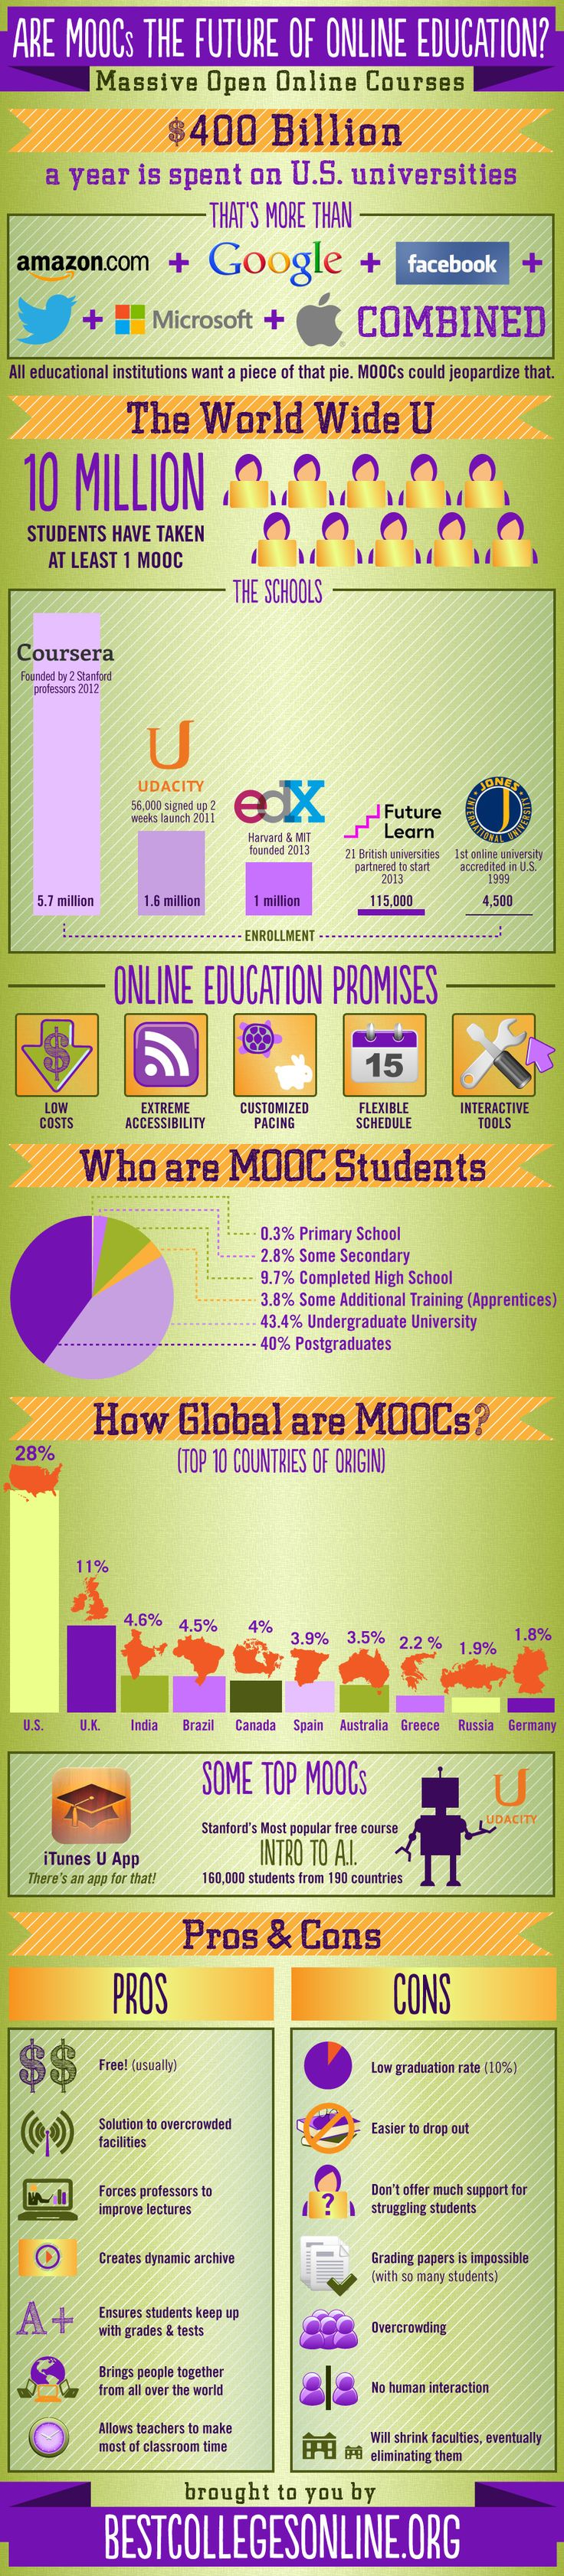 Are MOOCs the Future of Online